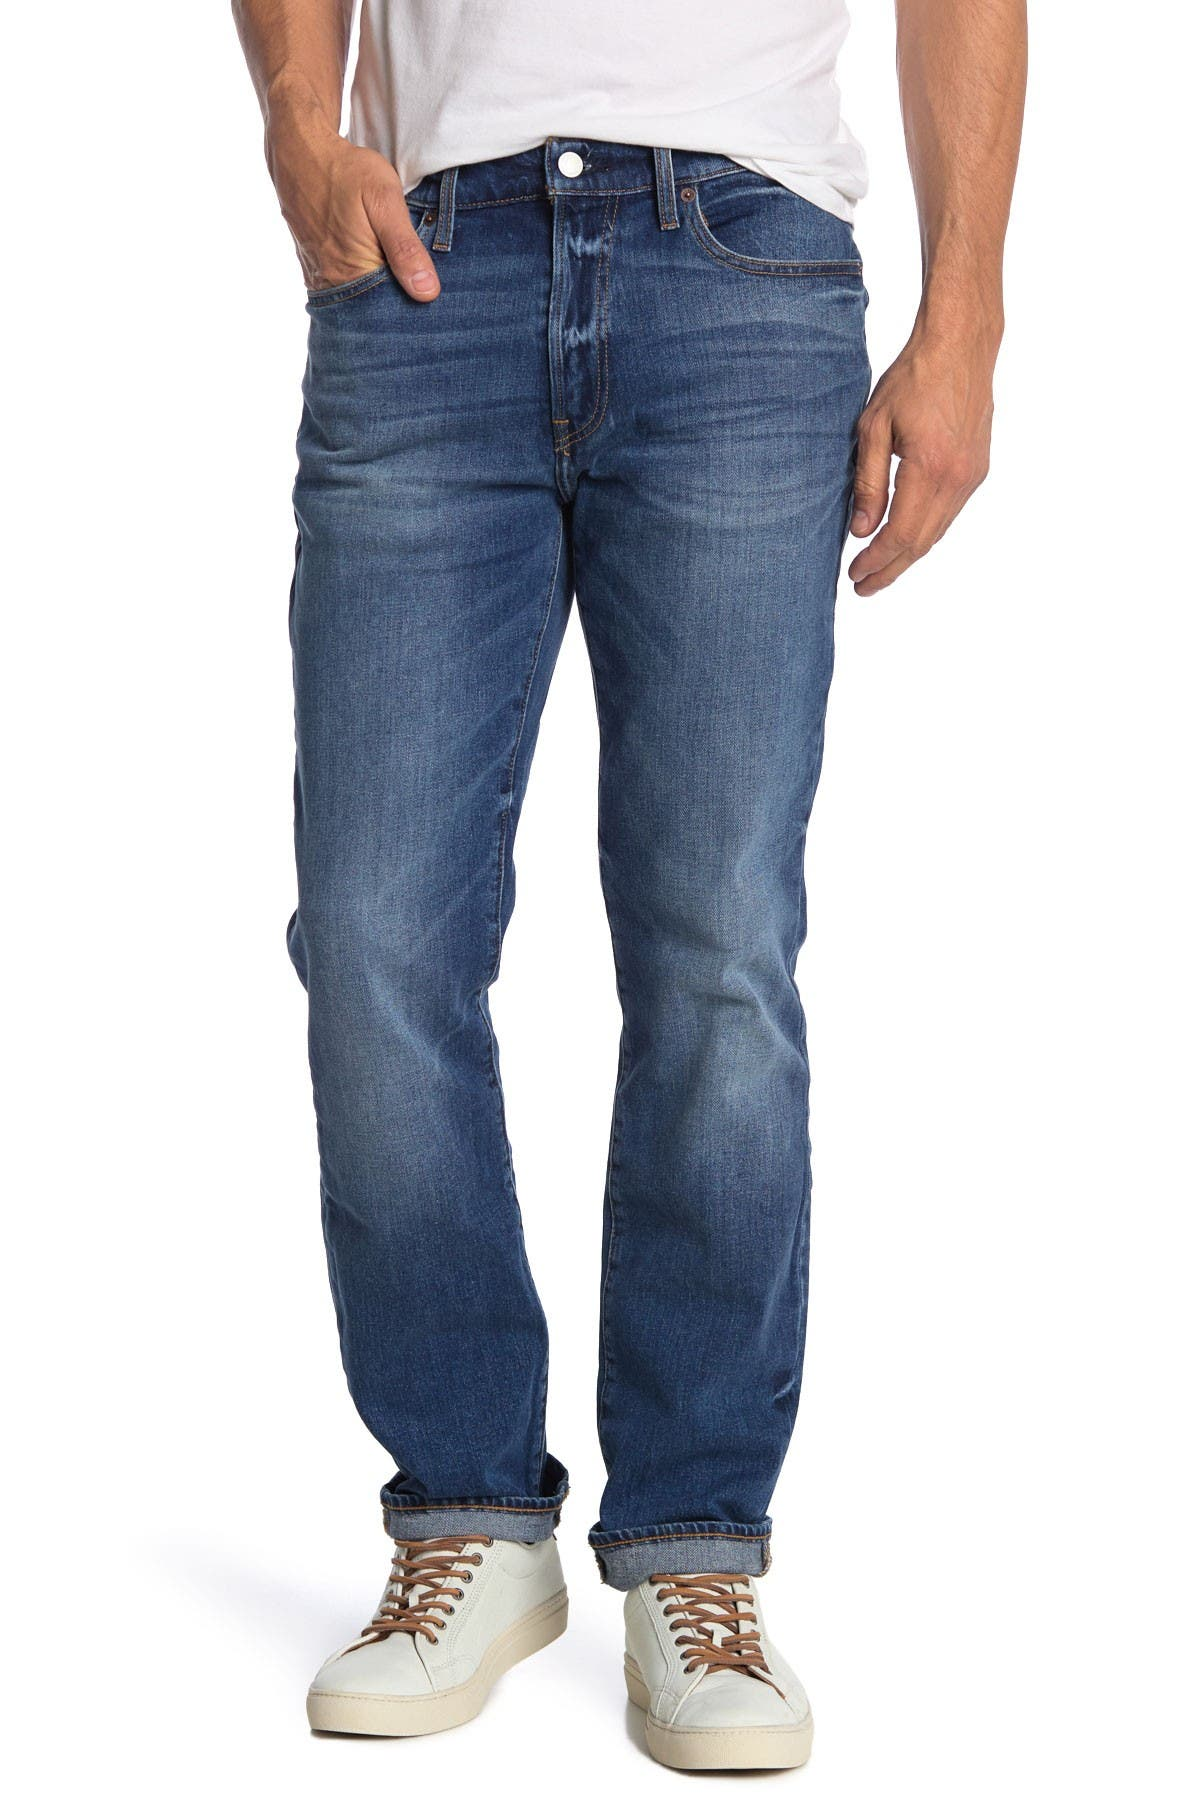 """Image of Lucky Brand 121 Slim Straight Cut Jeans - 30-34"""" Inseam"""